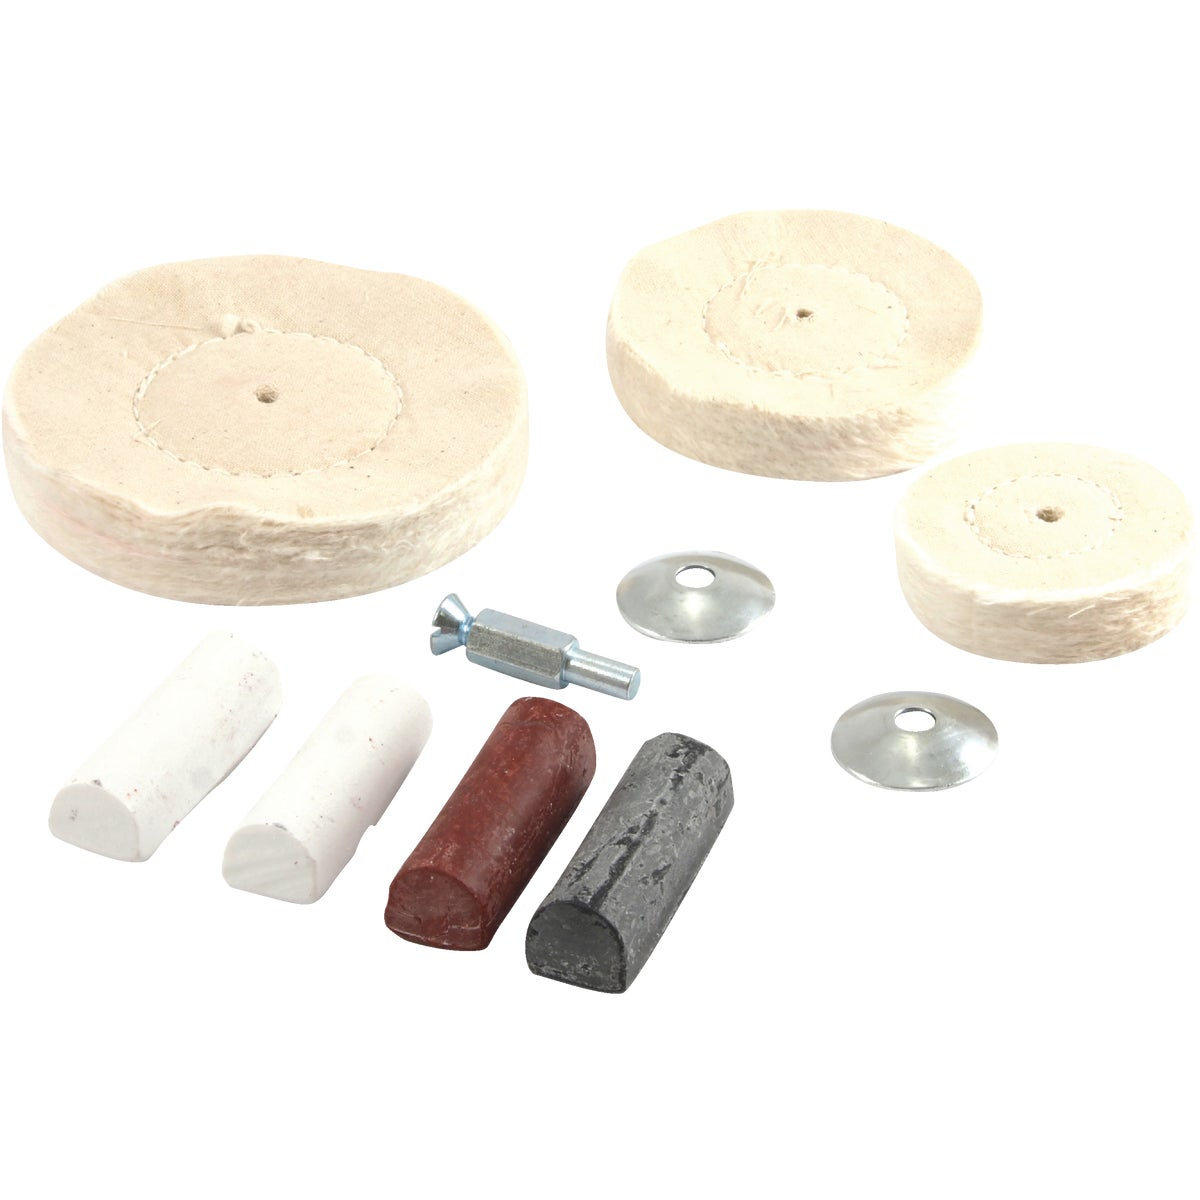 DRILL MTD BUFFING KIT - 72111 by Forney Industries